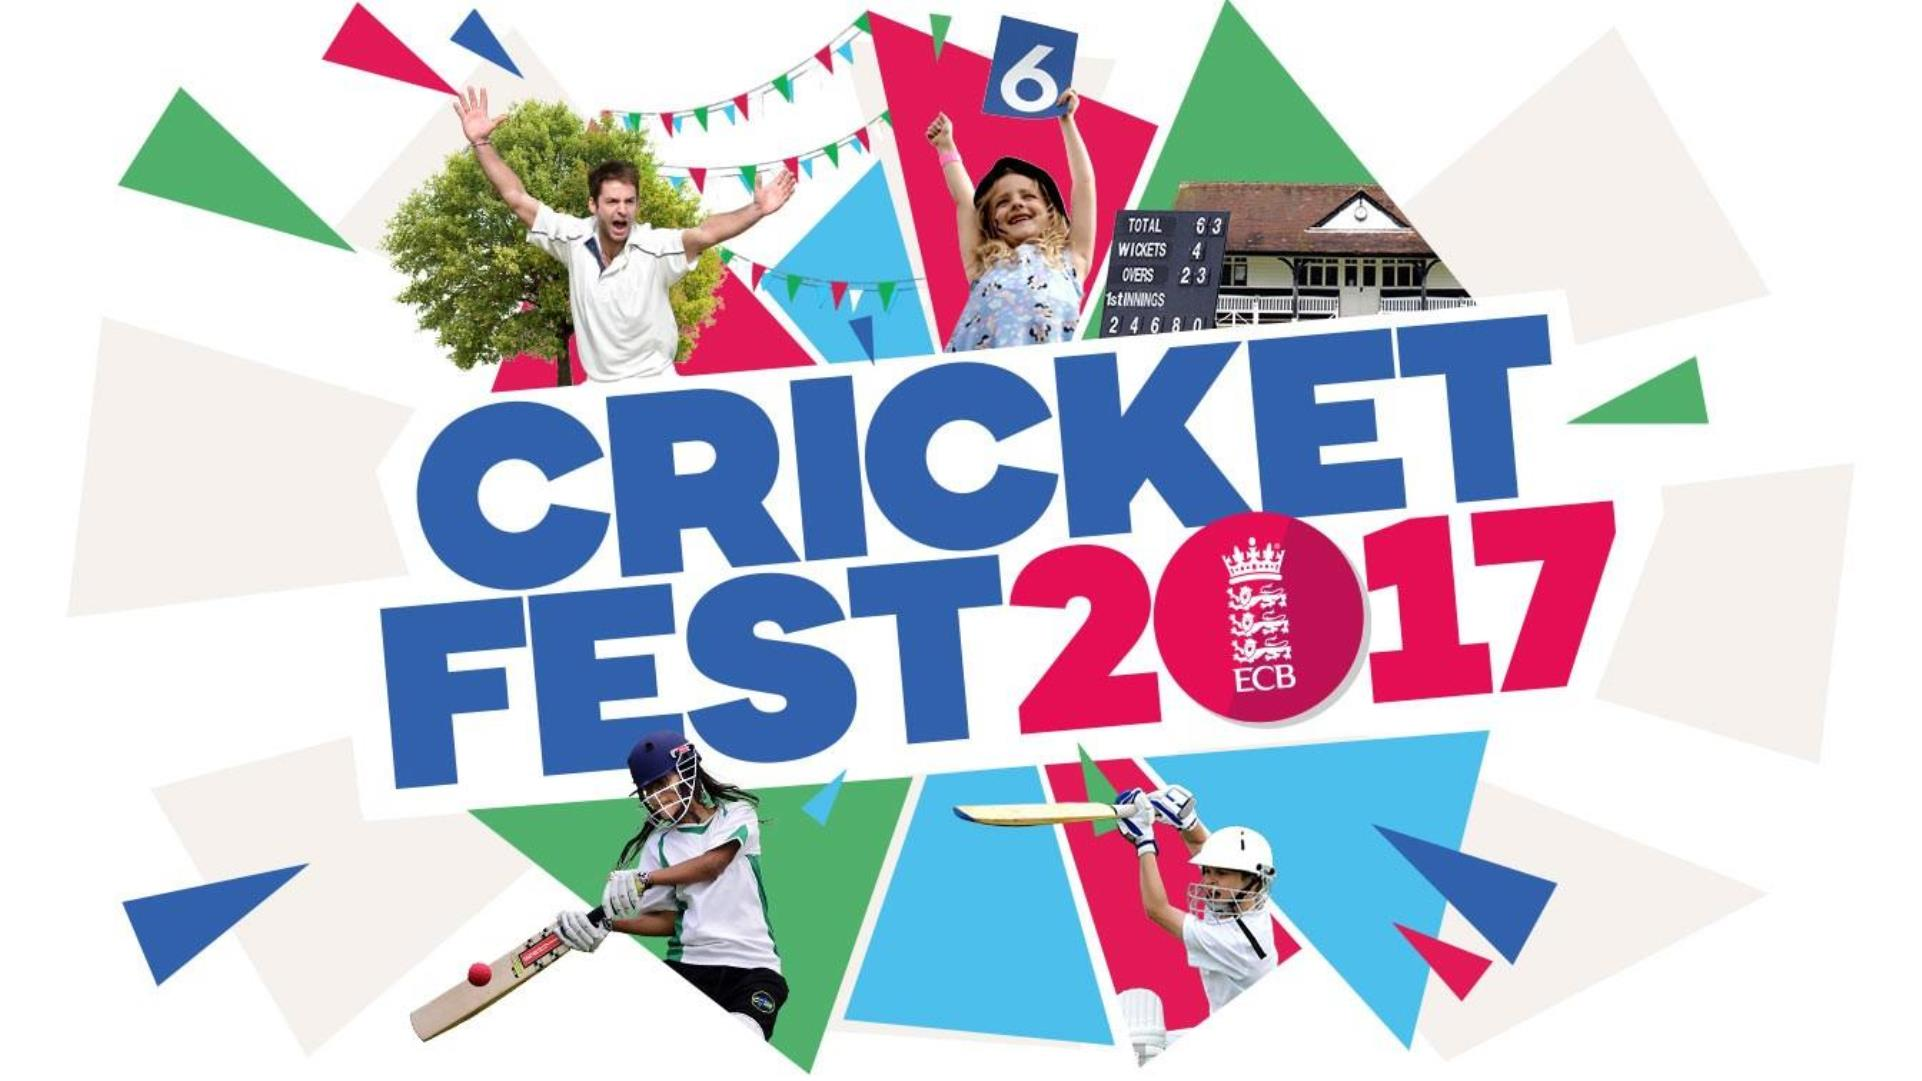 ECB urges clubs to sign up for CricketFest 2017